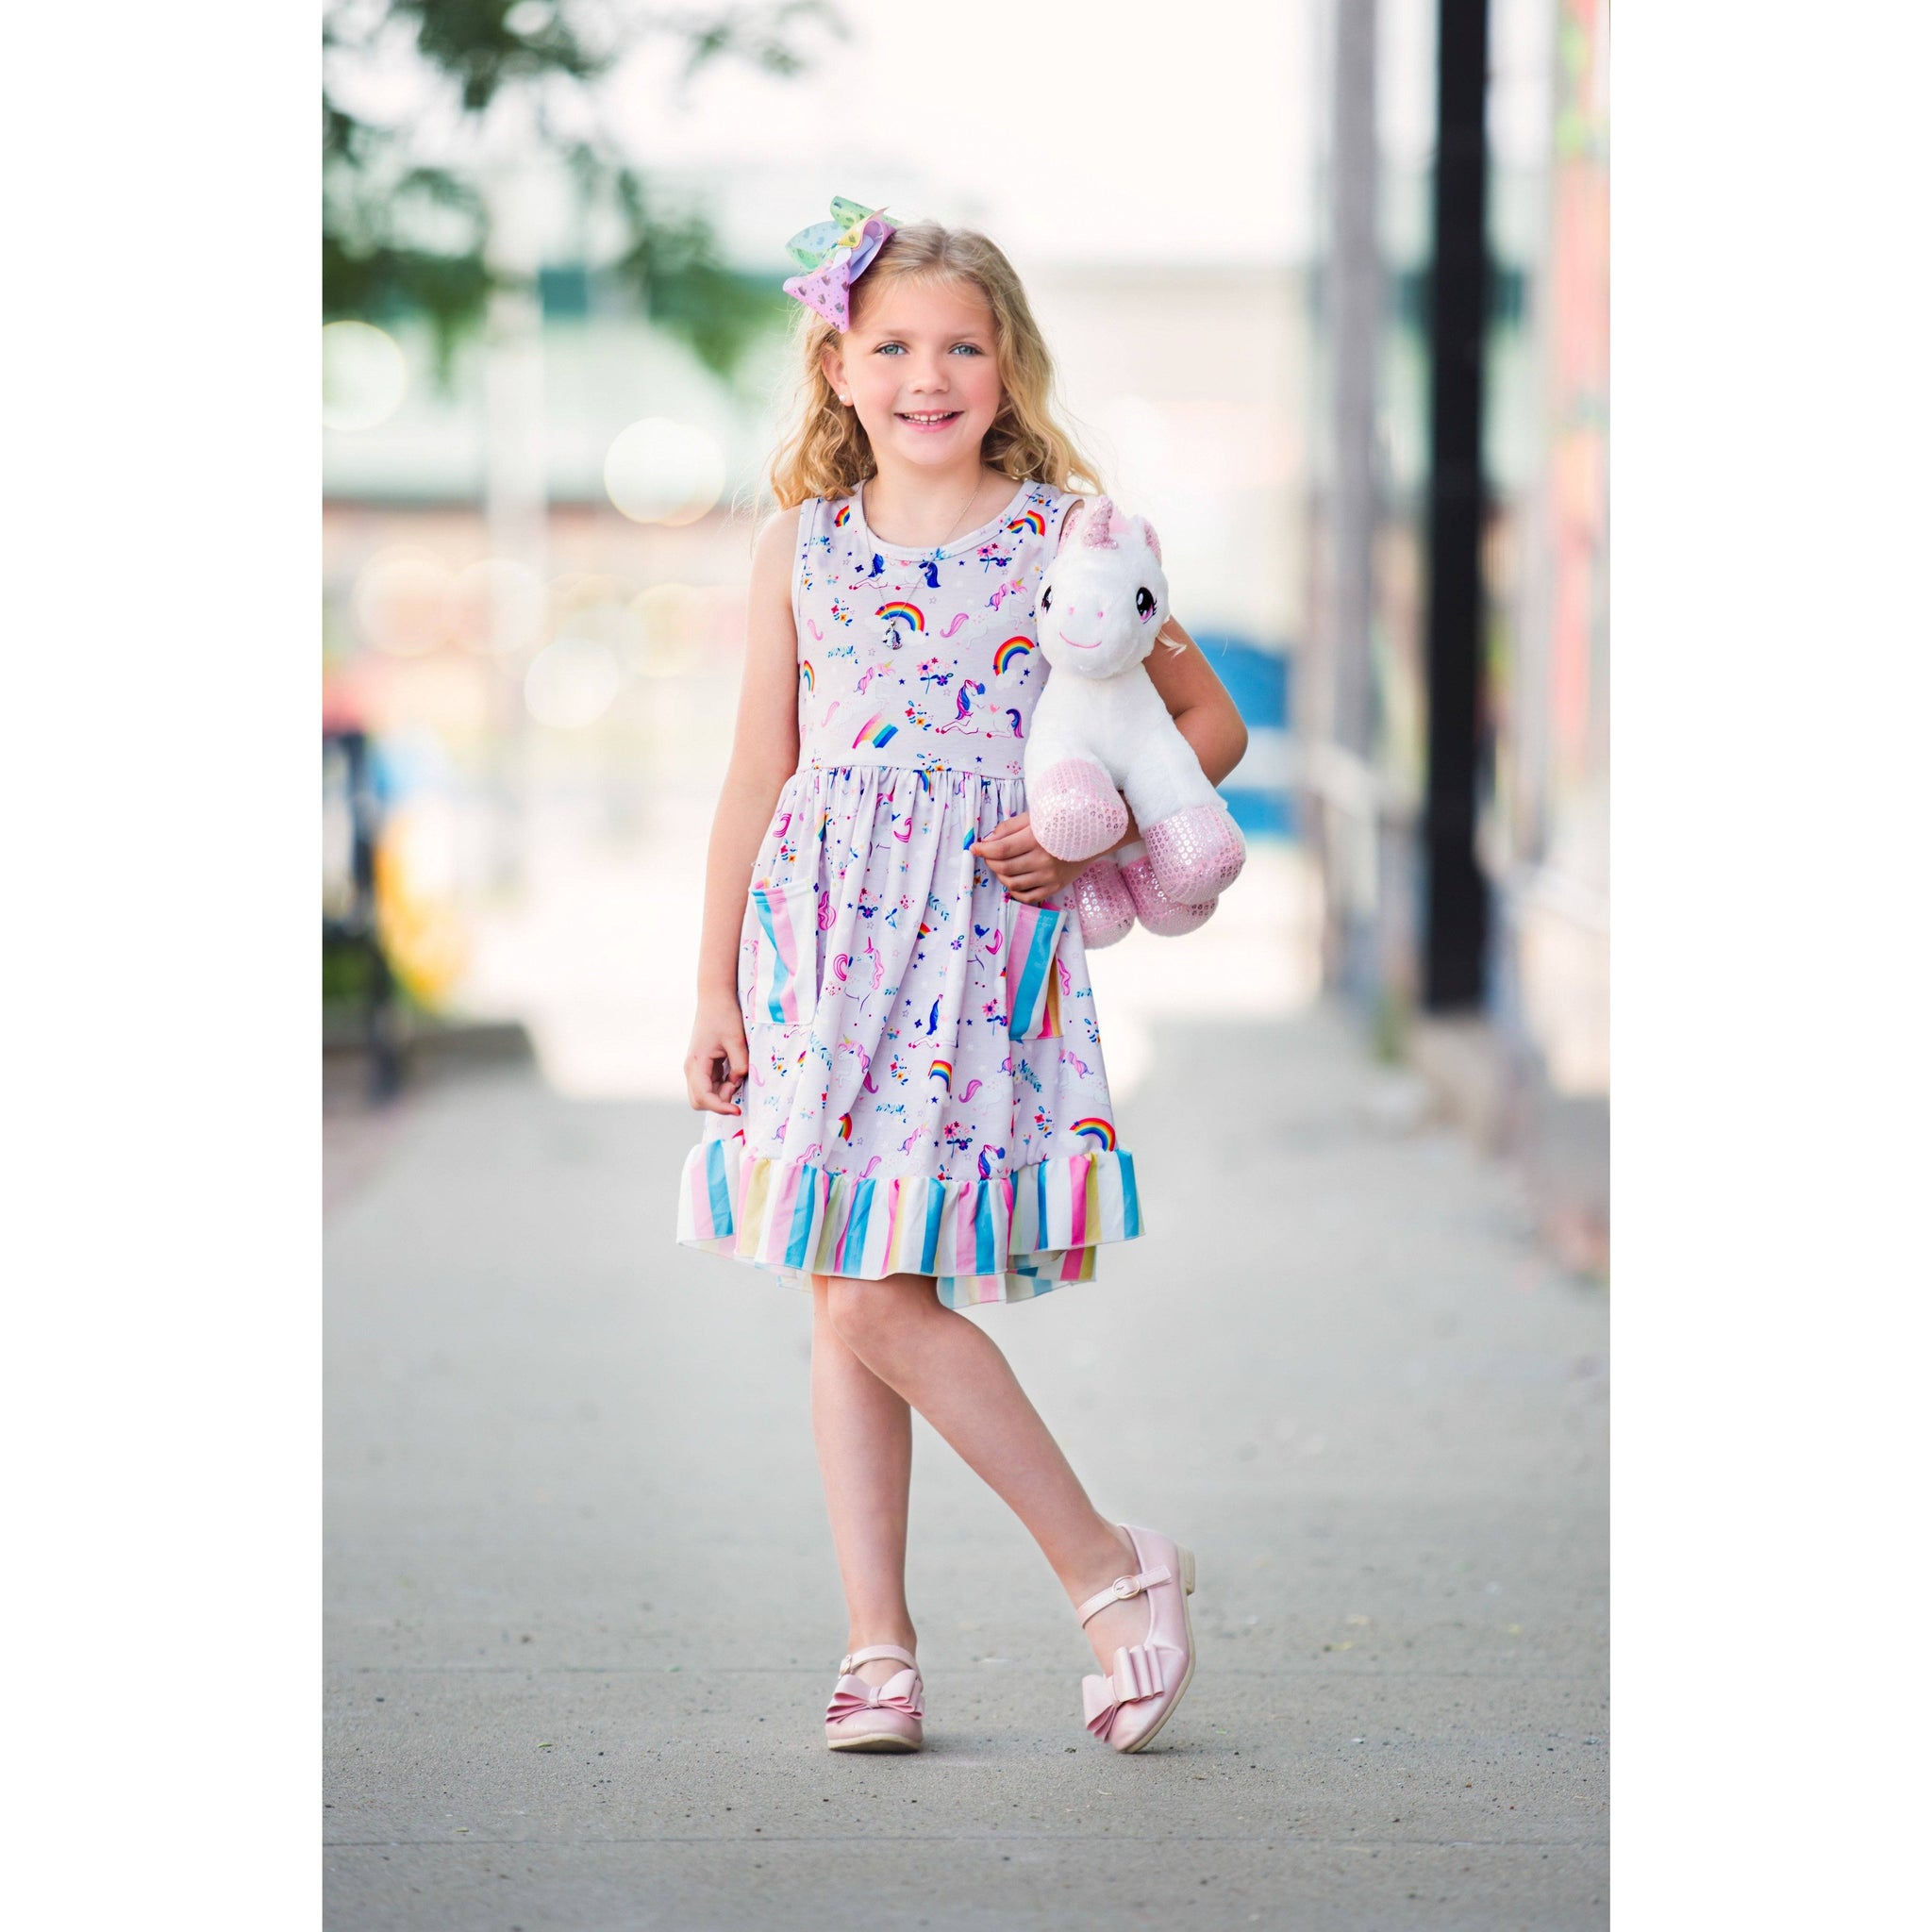 Adorable Essentials, Unicorns and Rainbows Dress,Dresses,Adorable Essentials, LLC